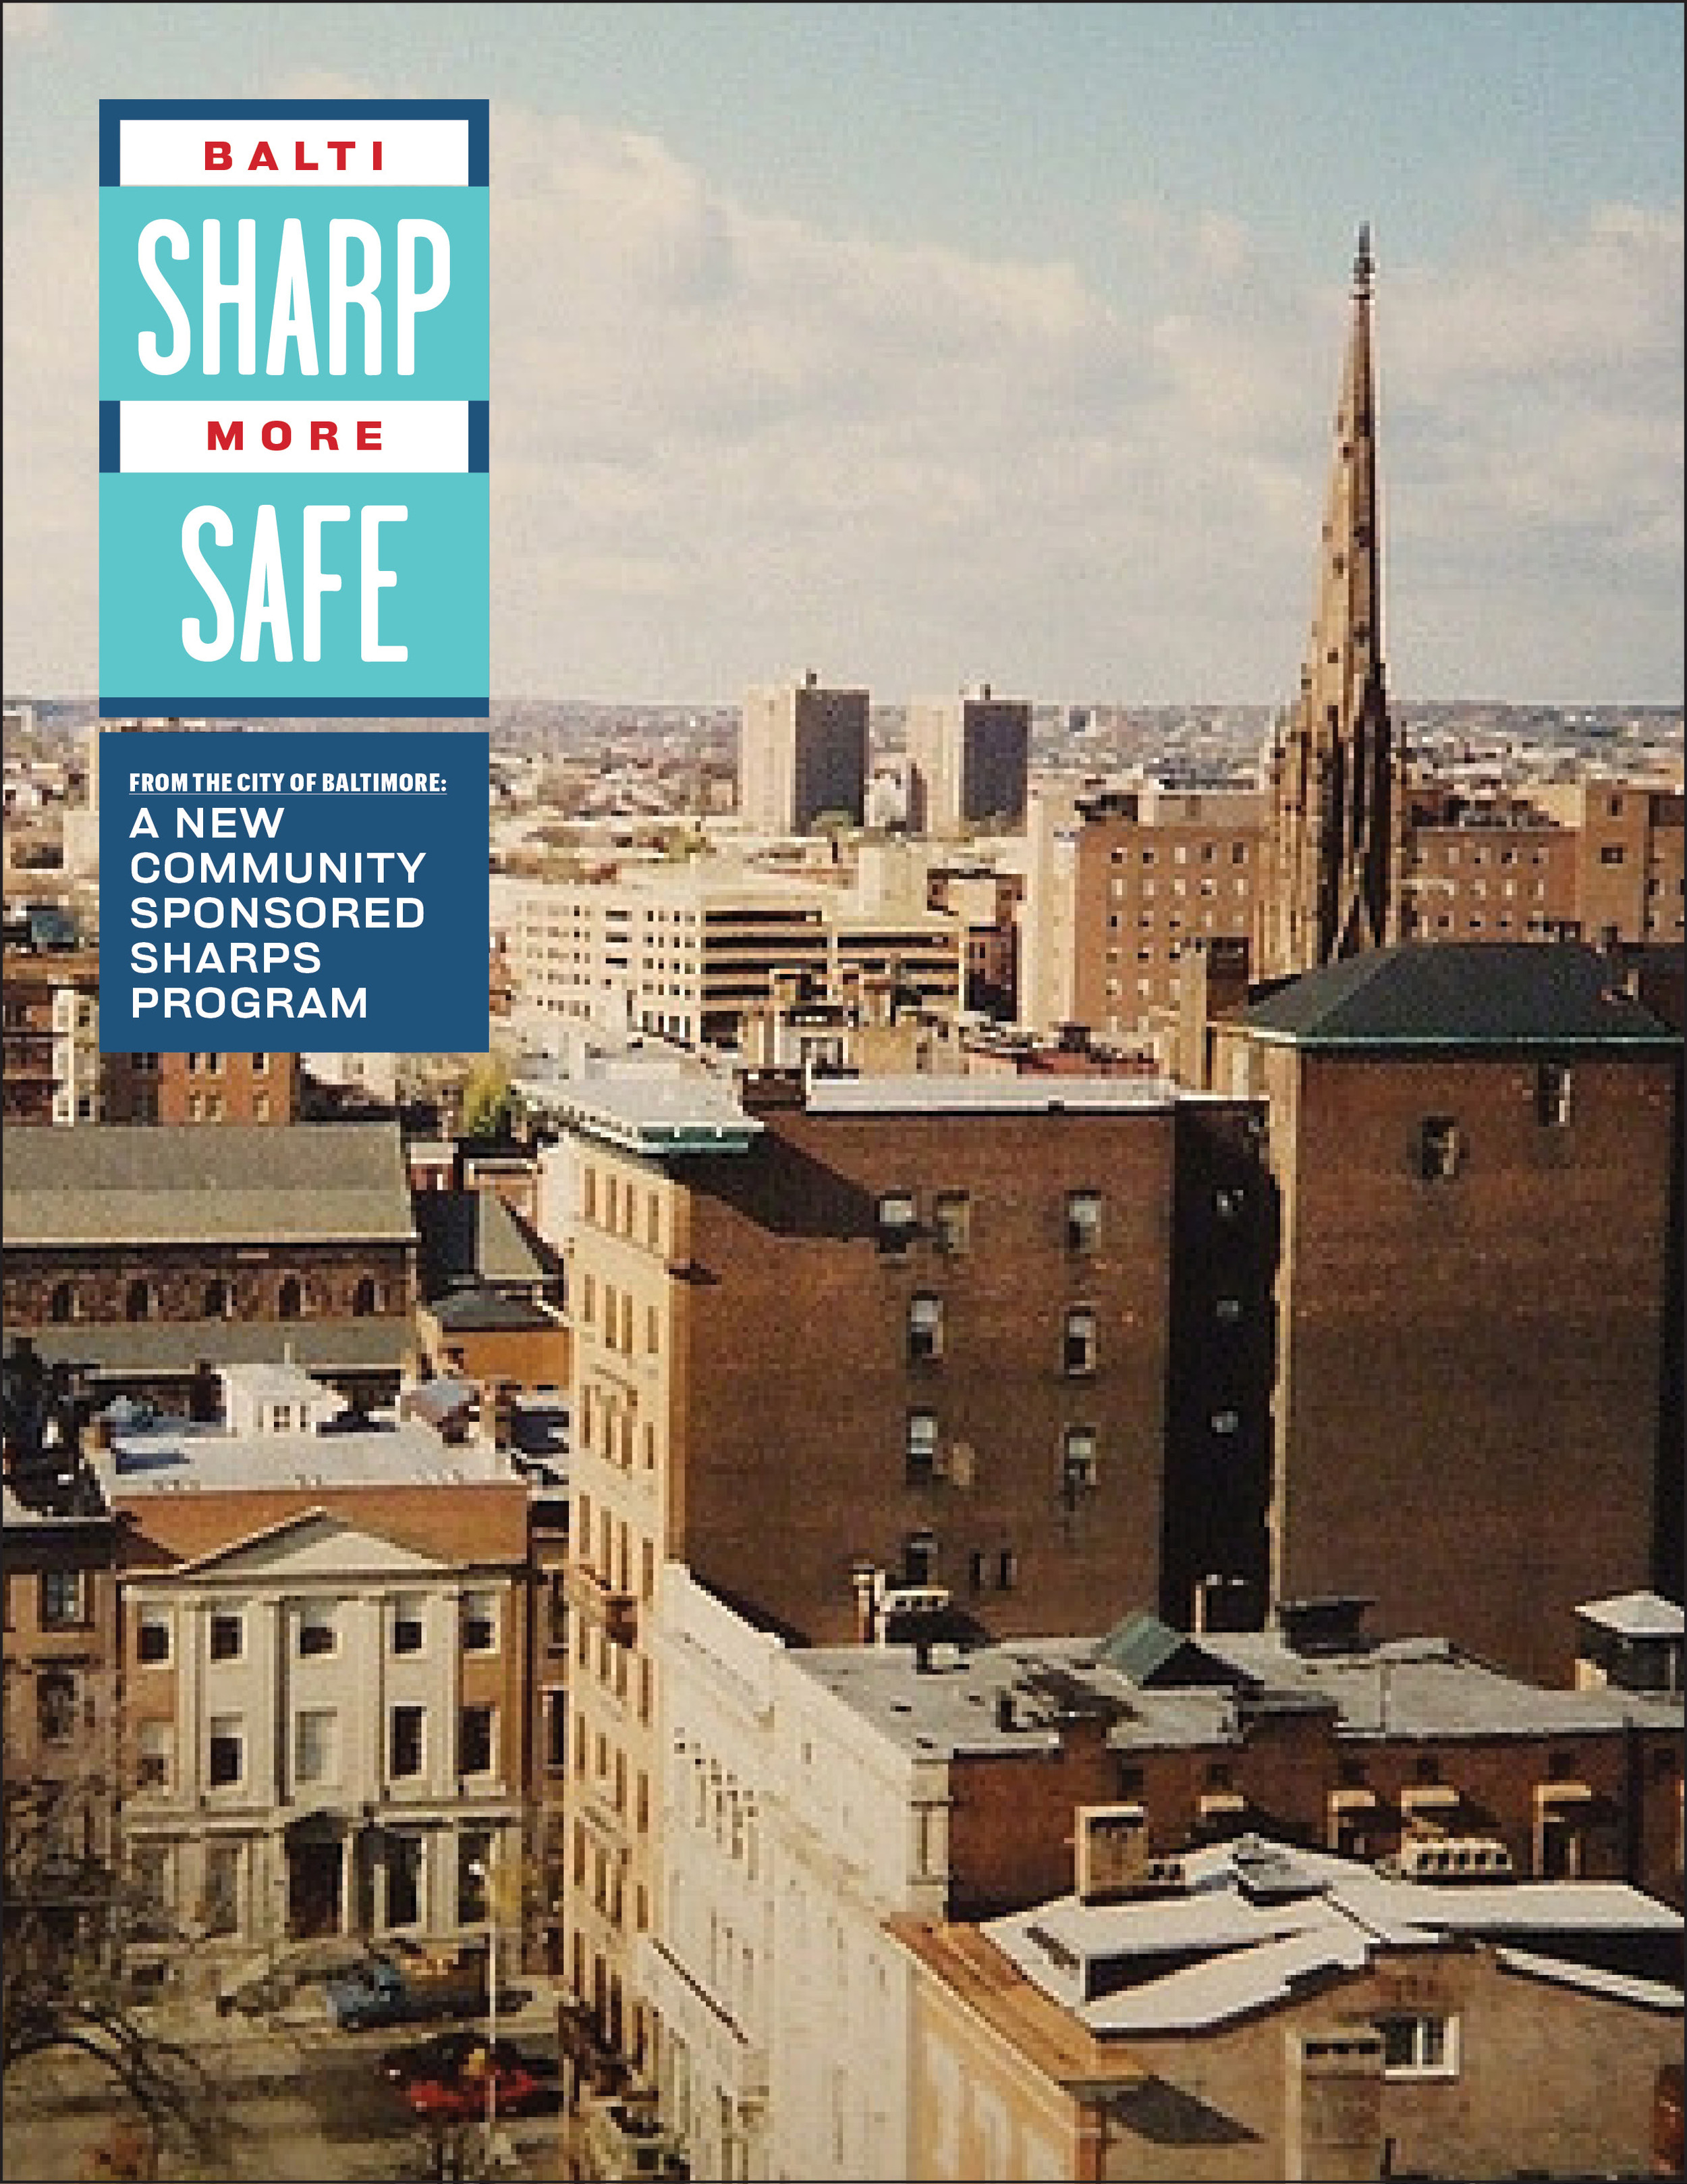 Baltimore Sharp Safe Booklet.jpg